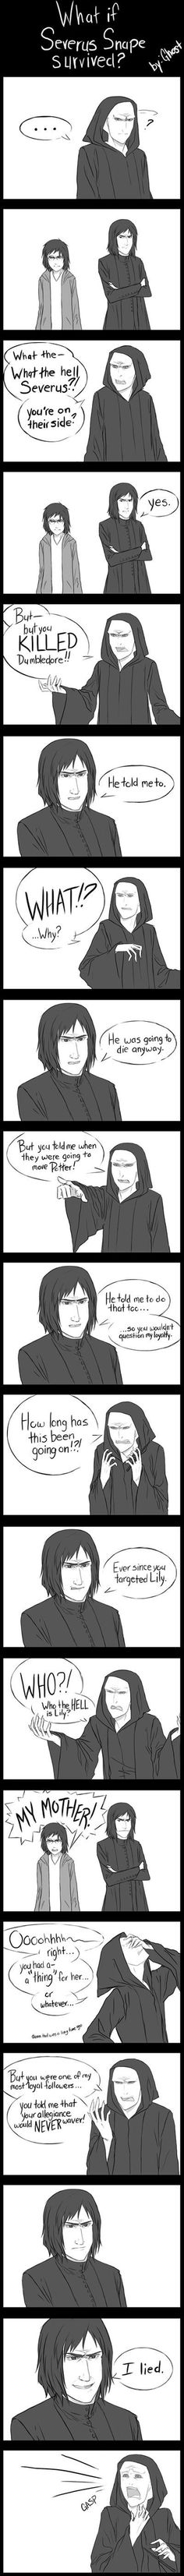 What if Snape Survived... Take that Voldemort